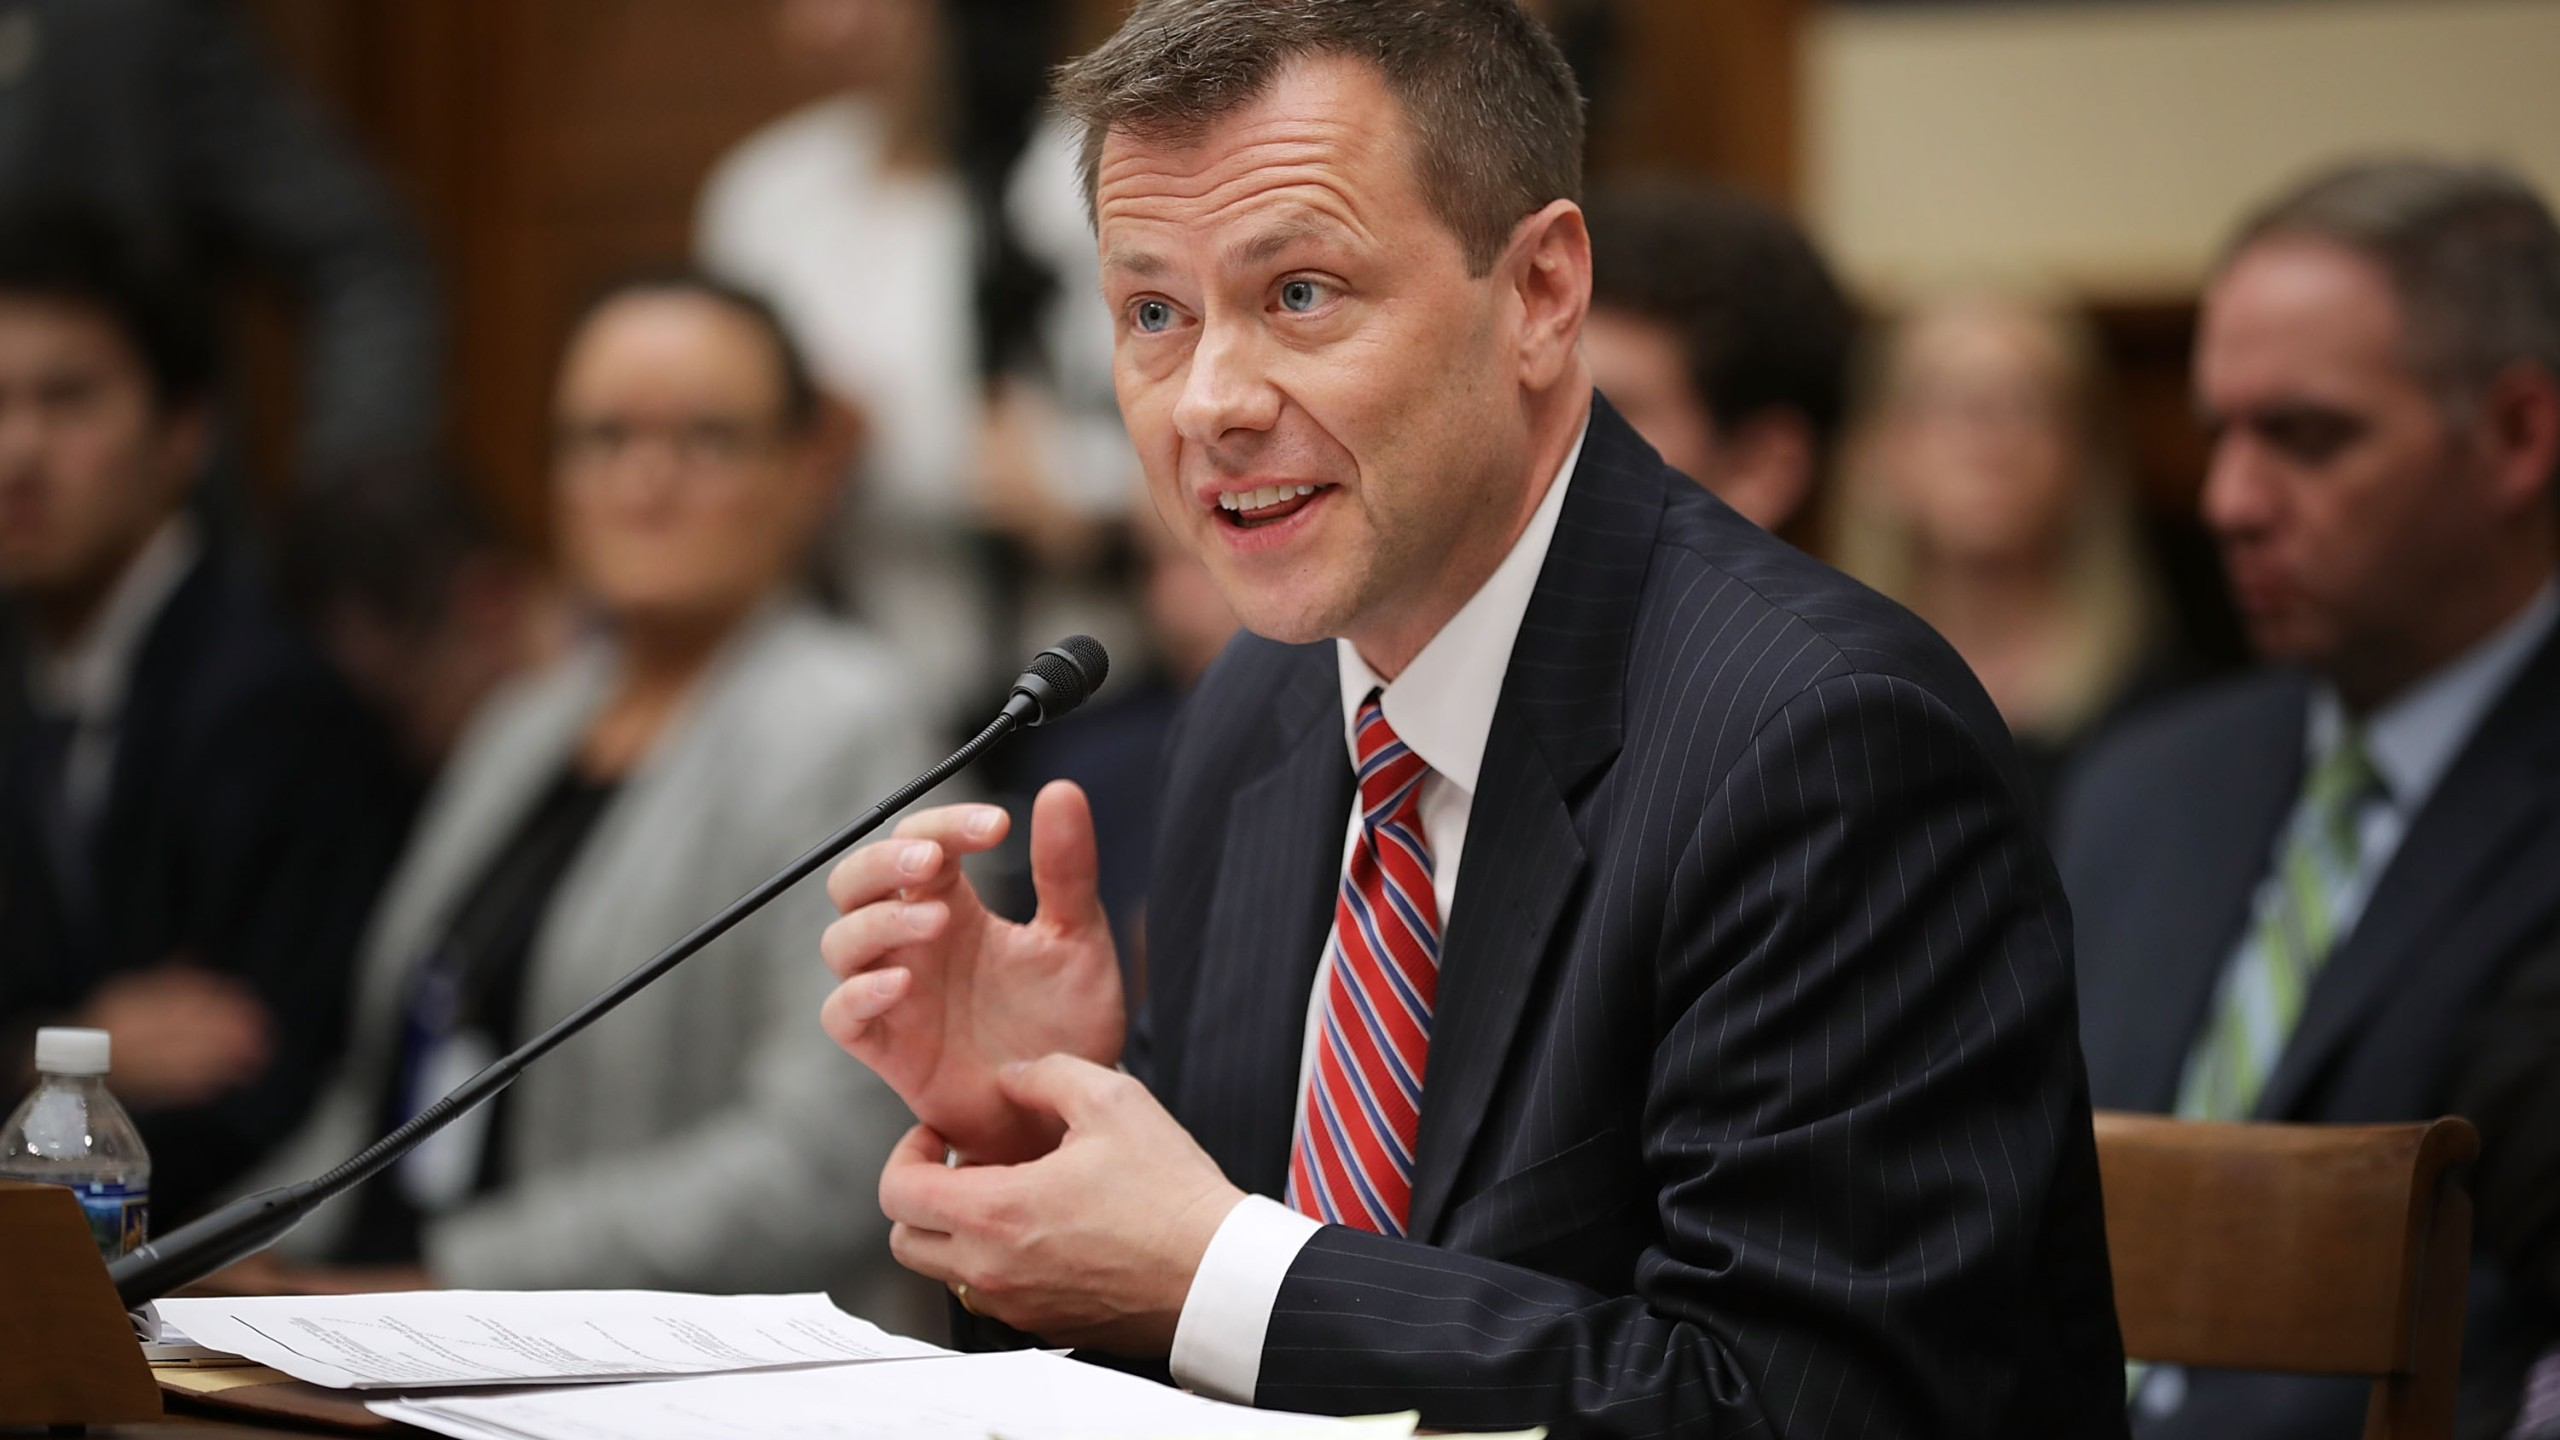 Deputy Assistant FBI Director Peter Strzok testifies before a joint committee hearing of the House Judiciary and Oversight and Government Reform committees in the Rayburn House Office Building on Capitol Hill July 12, 2018, in Washington, D.C. (Credit: Chip Somodevilla/Getty Images)